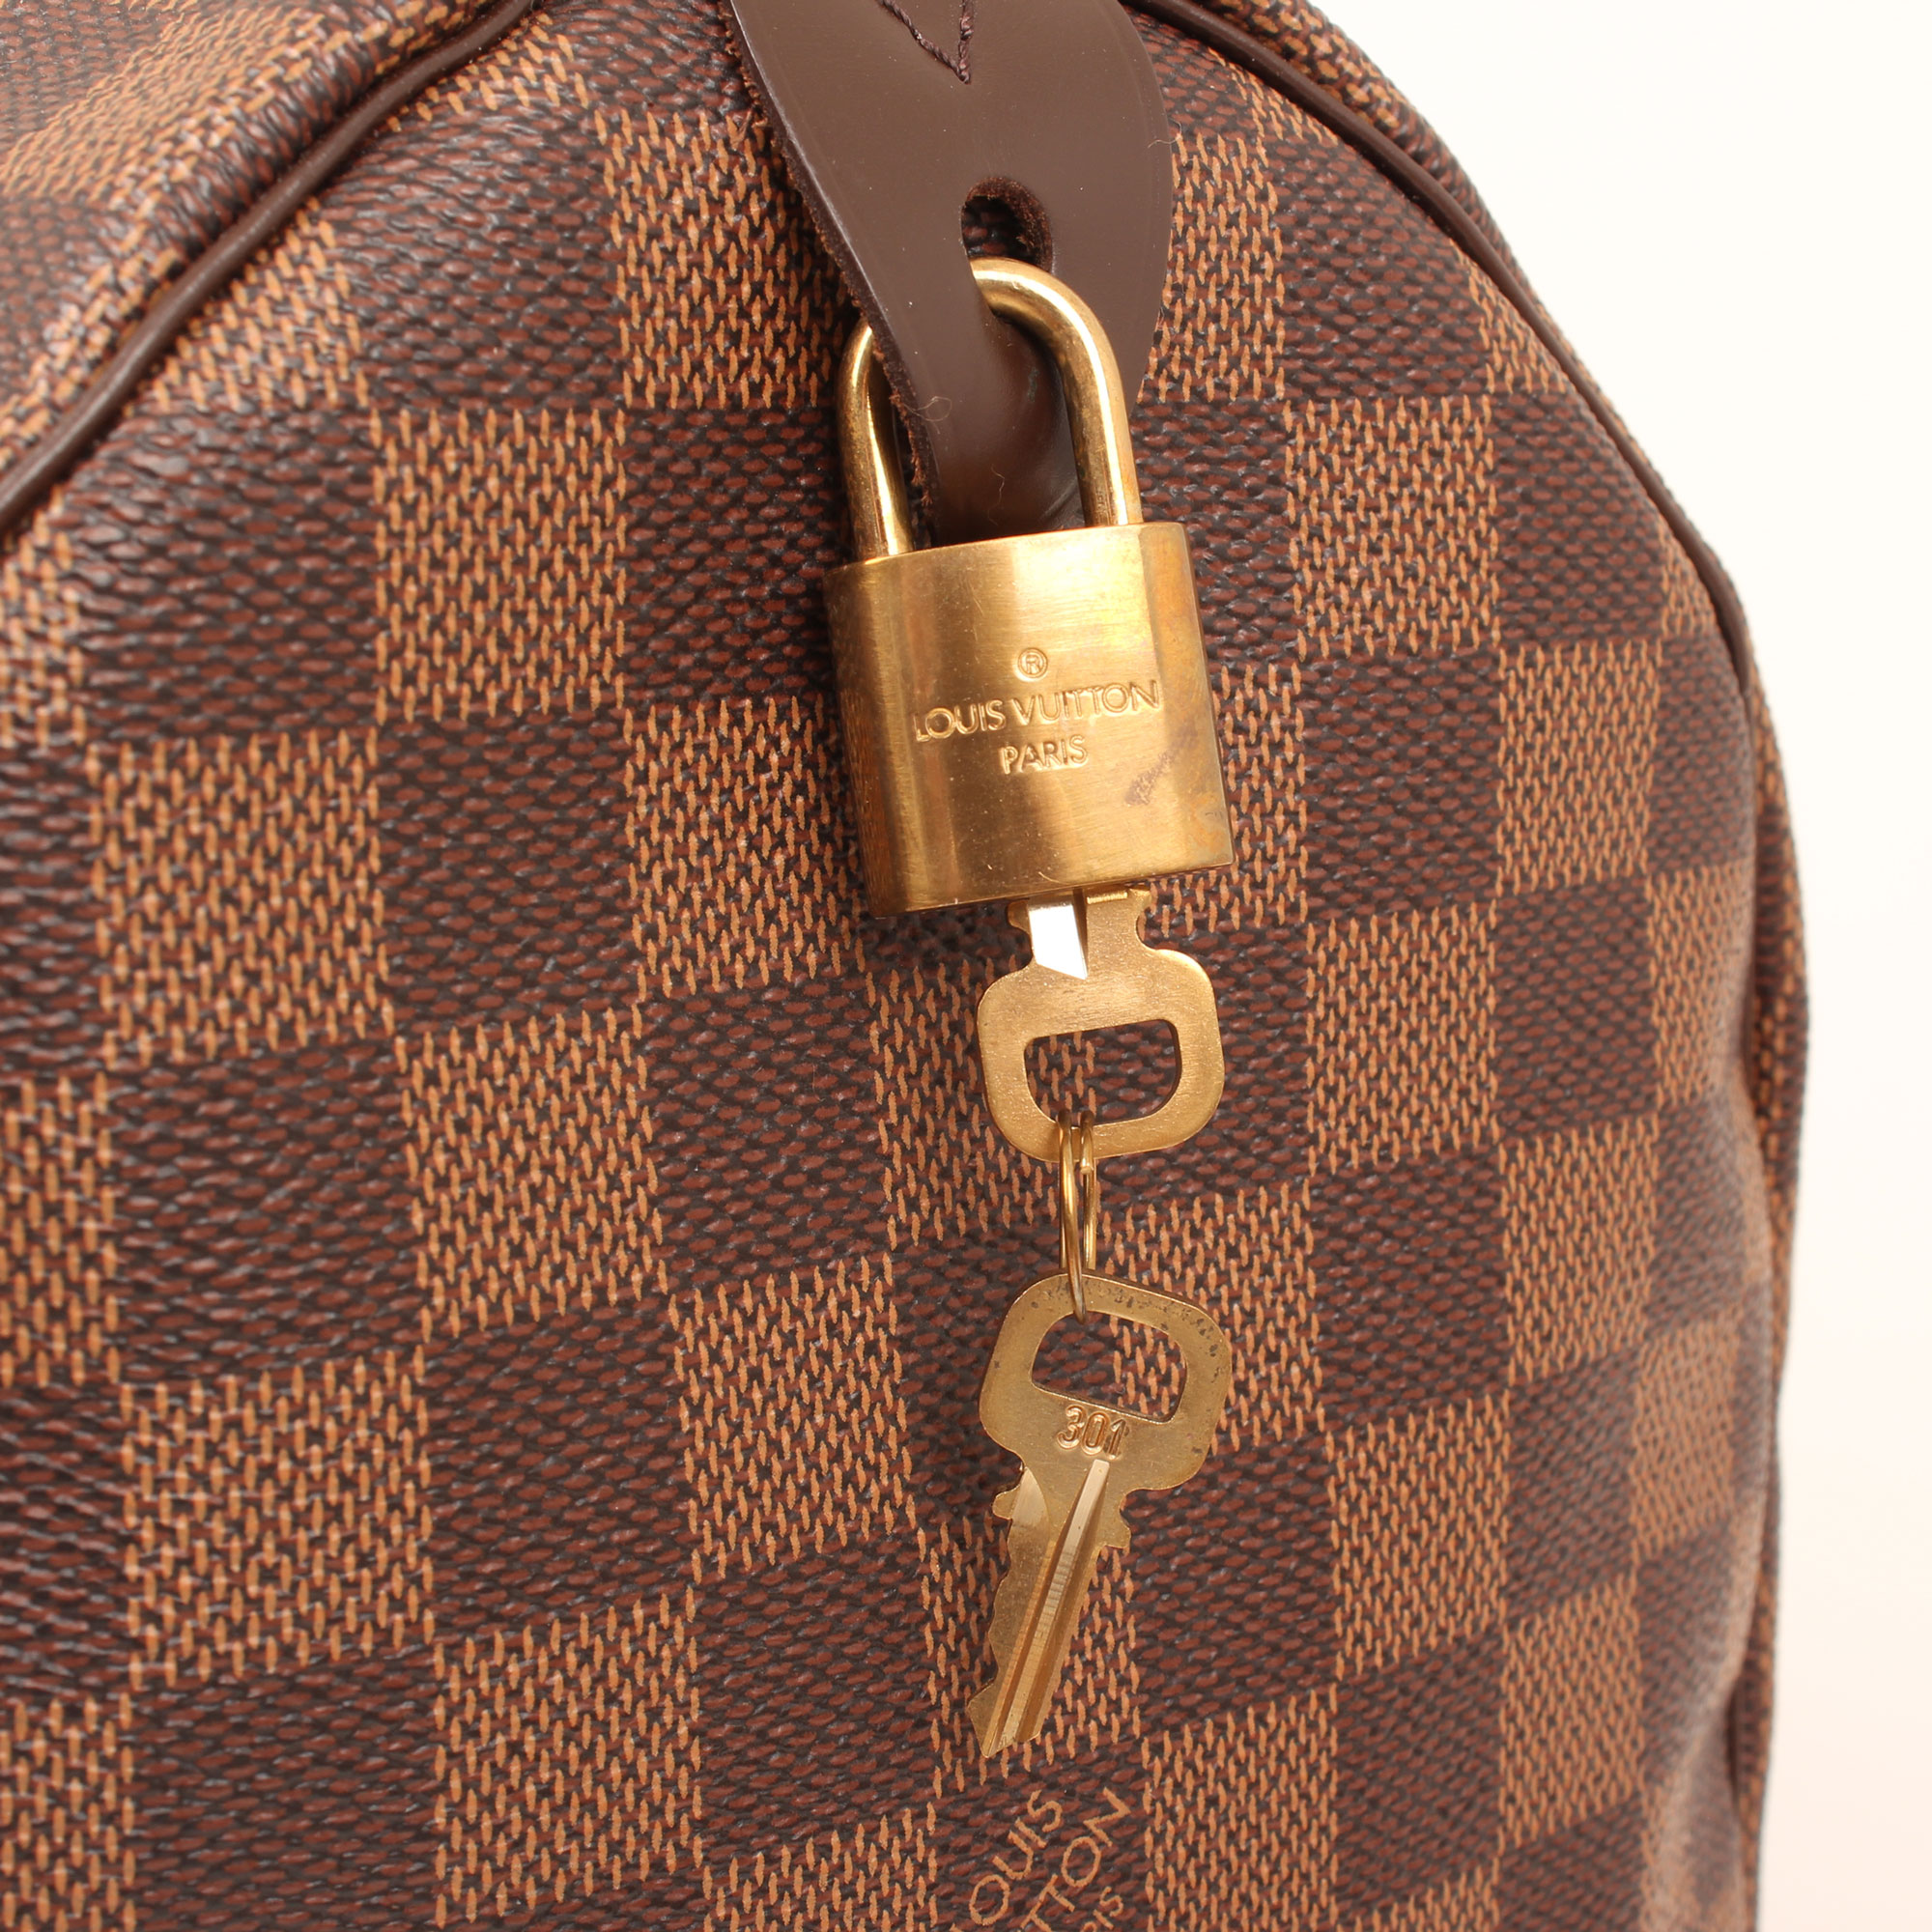 bag-louis-vuitton-speedy-35-damier-ebene-padlock-keys